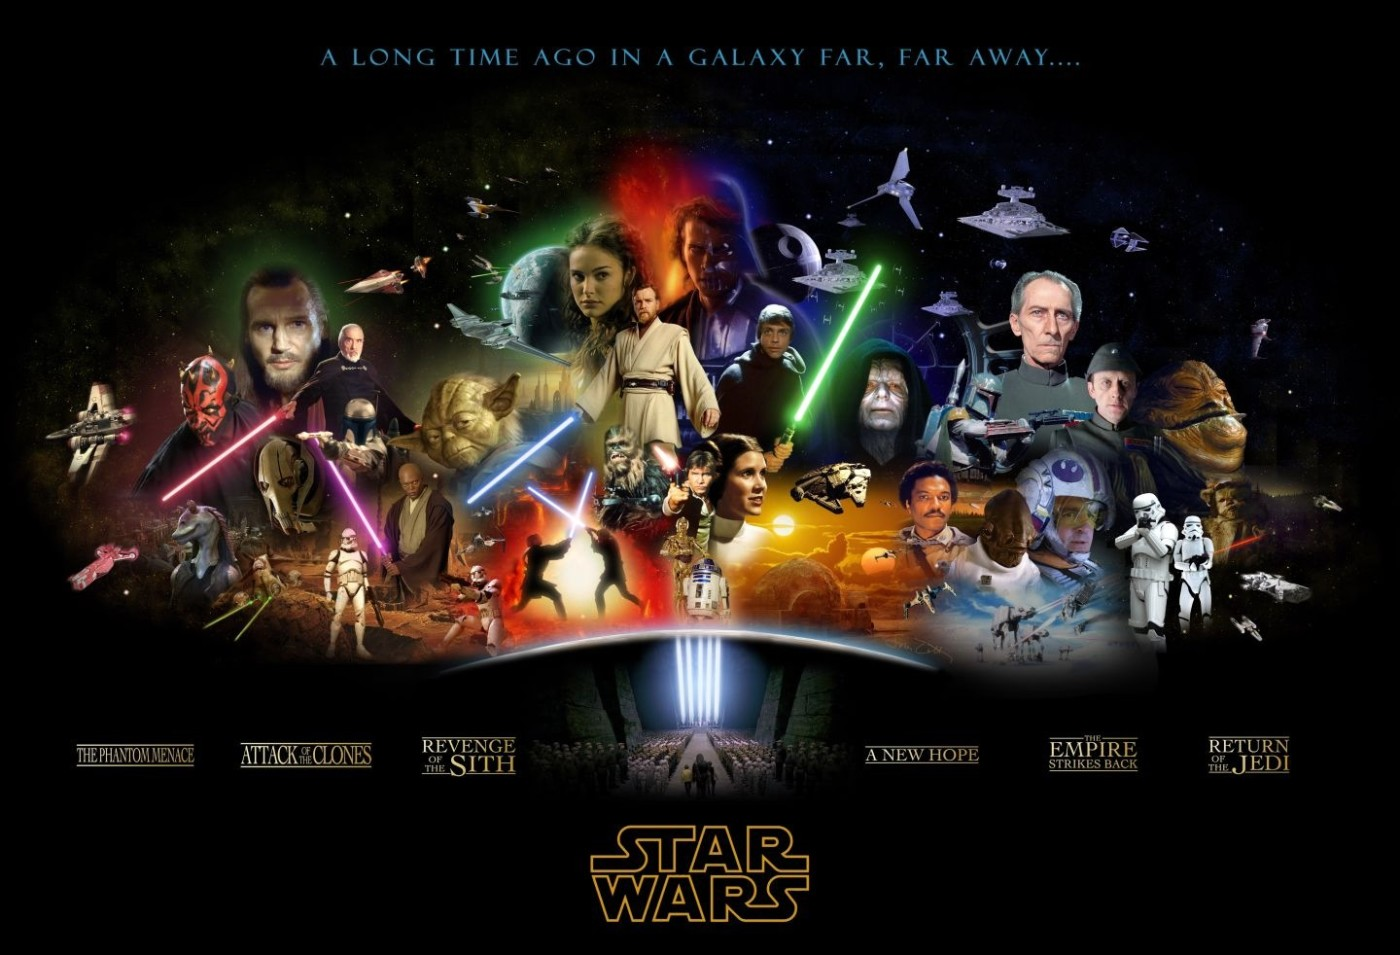 Star-Wars-star-wars-revenge-of-the-sith-23605293-1440-982